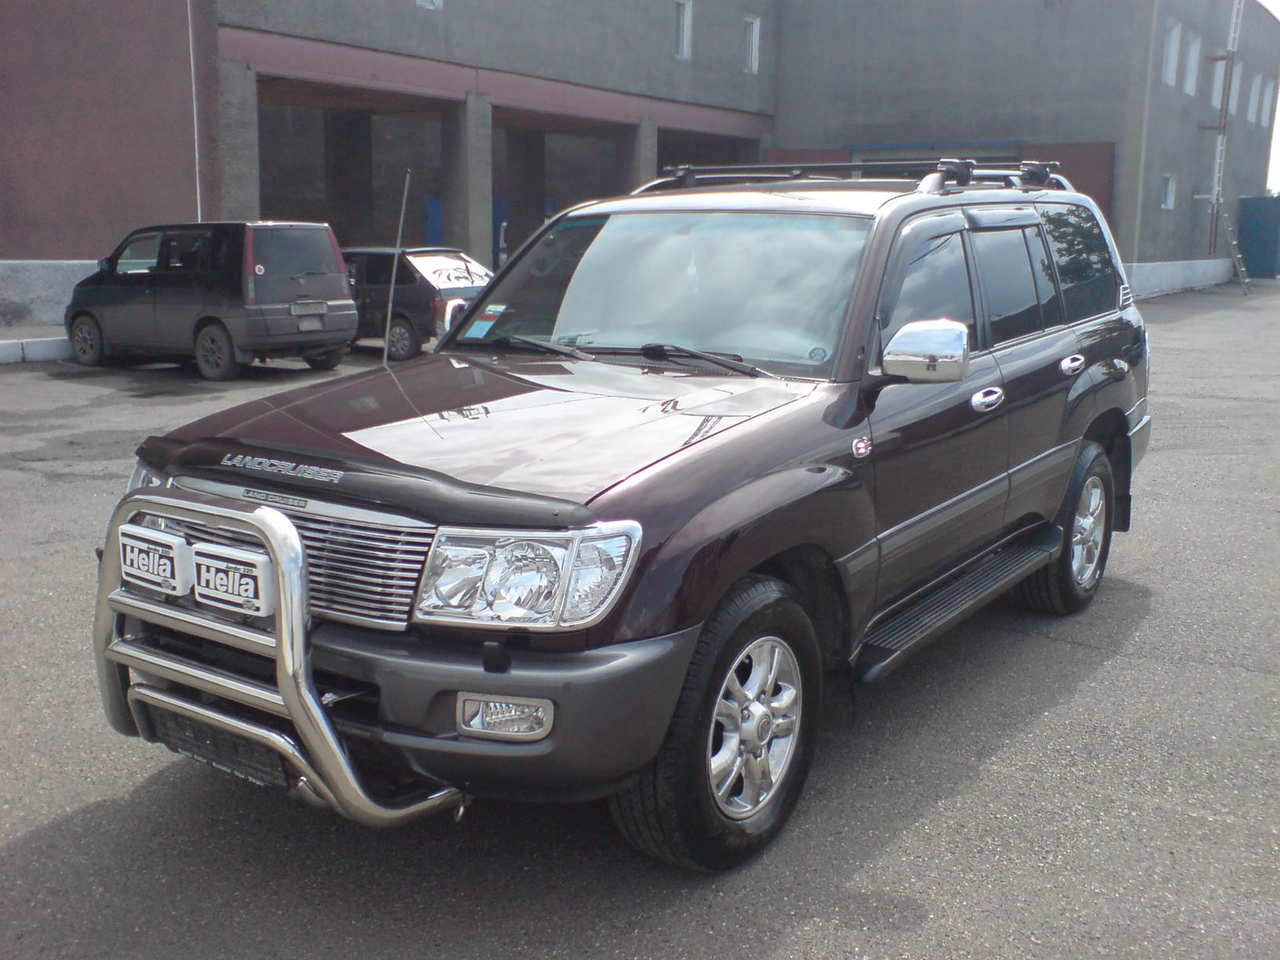 2007 toyota land cruiser pictures 4200cc diesel manual. Black Bedroom Furniture Sets. Home Design Ideas